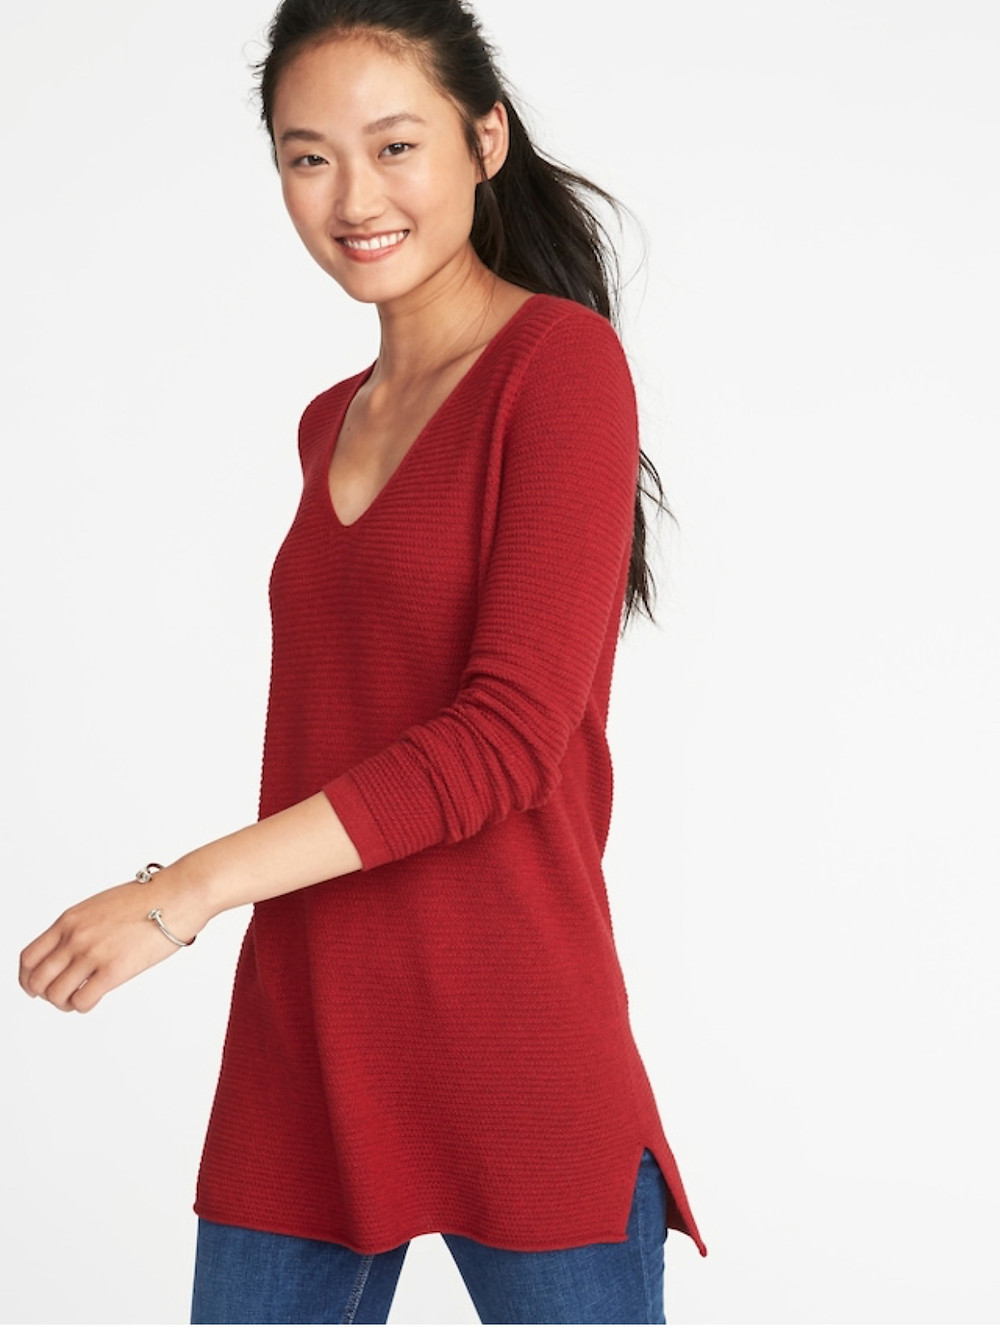 Textured V-Neck Tunic Sweater for Women